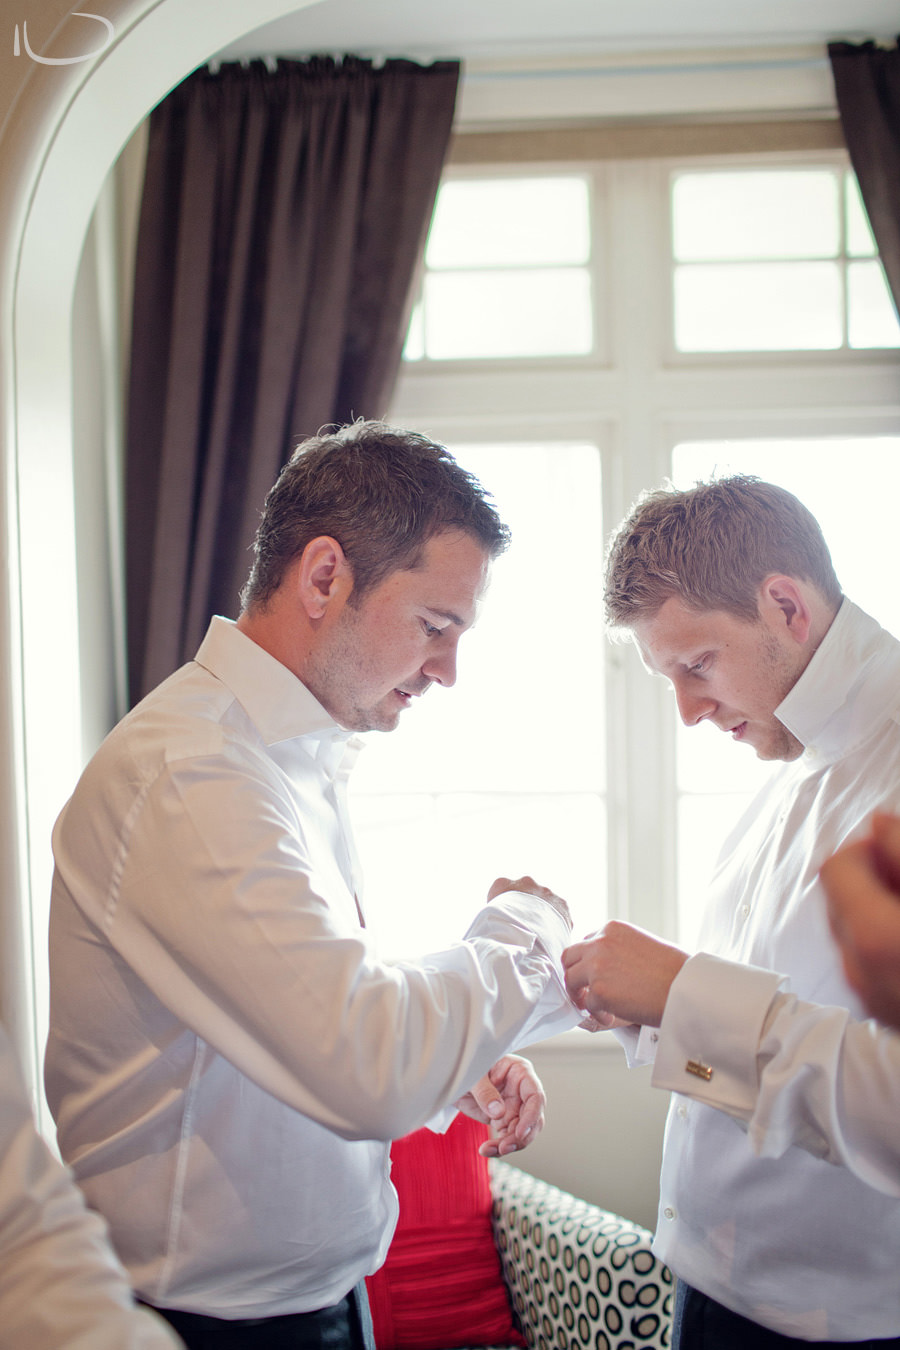 Sydney Wedding Photographer: Groom & groomsman putting on cufflinks